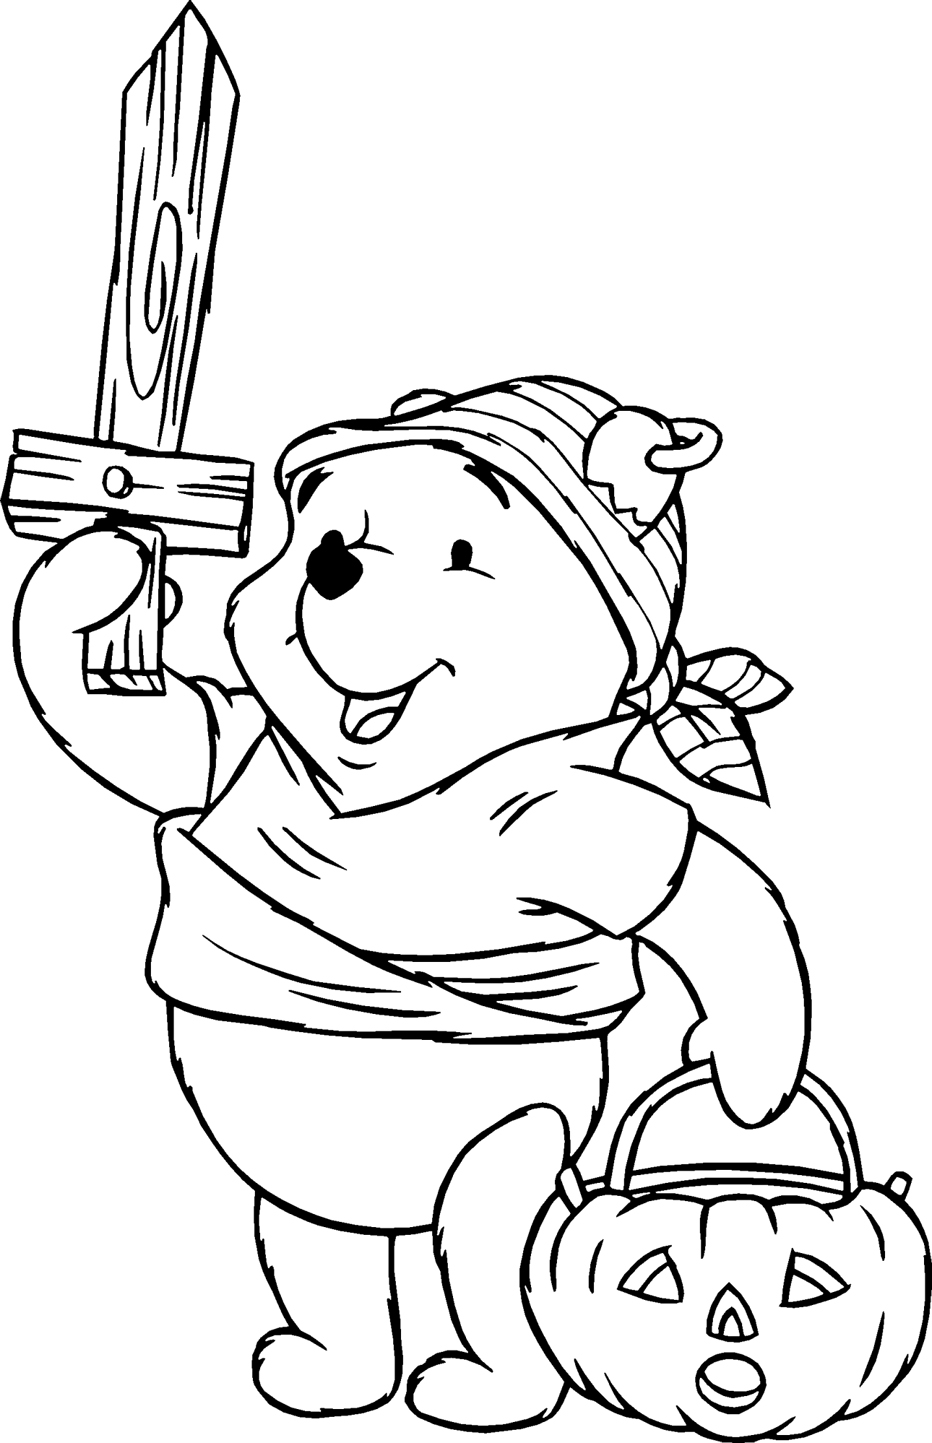 pooh printables winnie the pooh coloring page minister coloring pooh printables